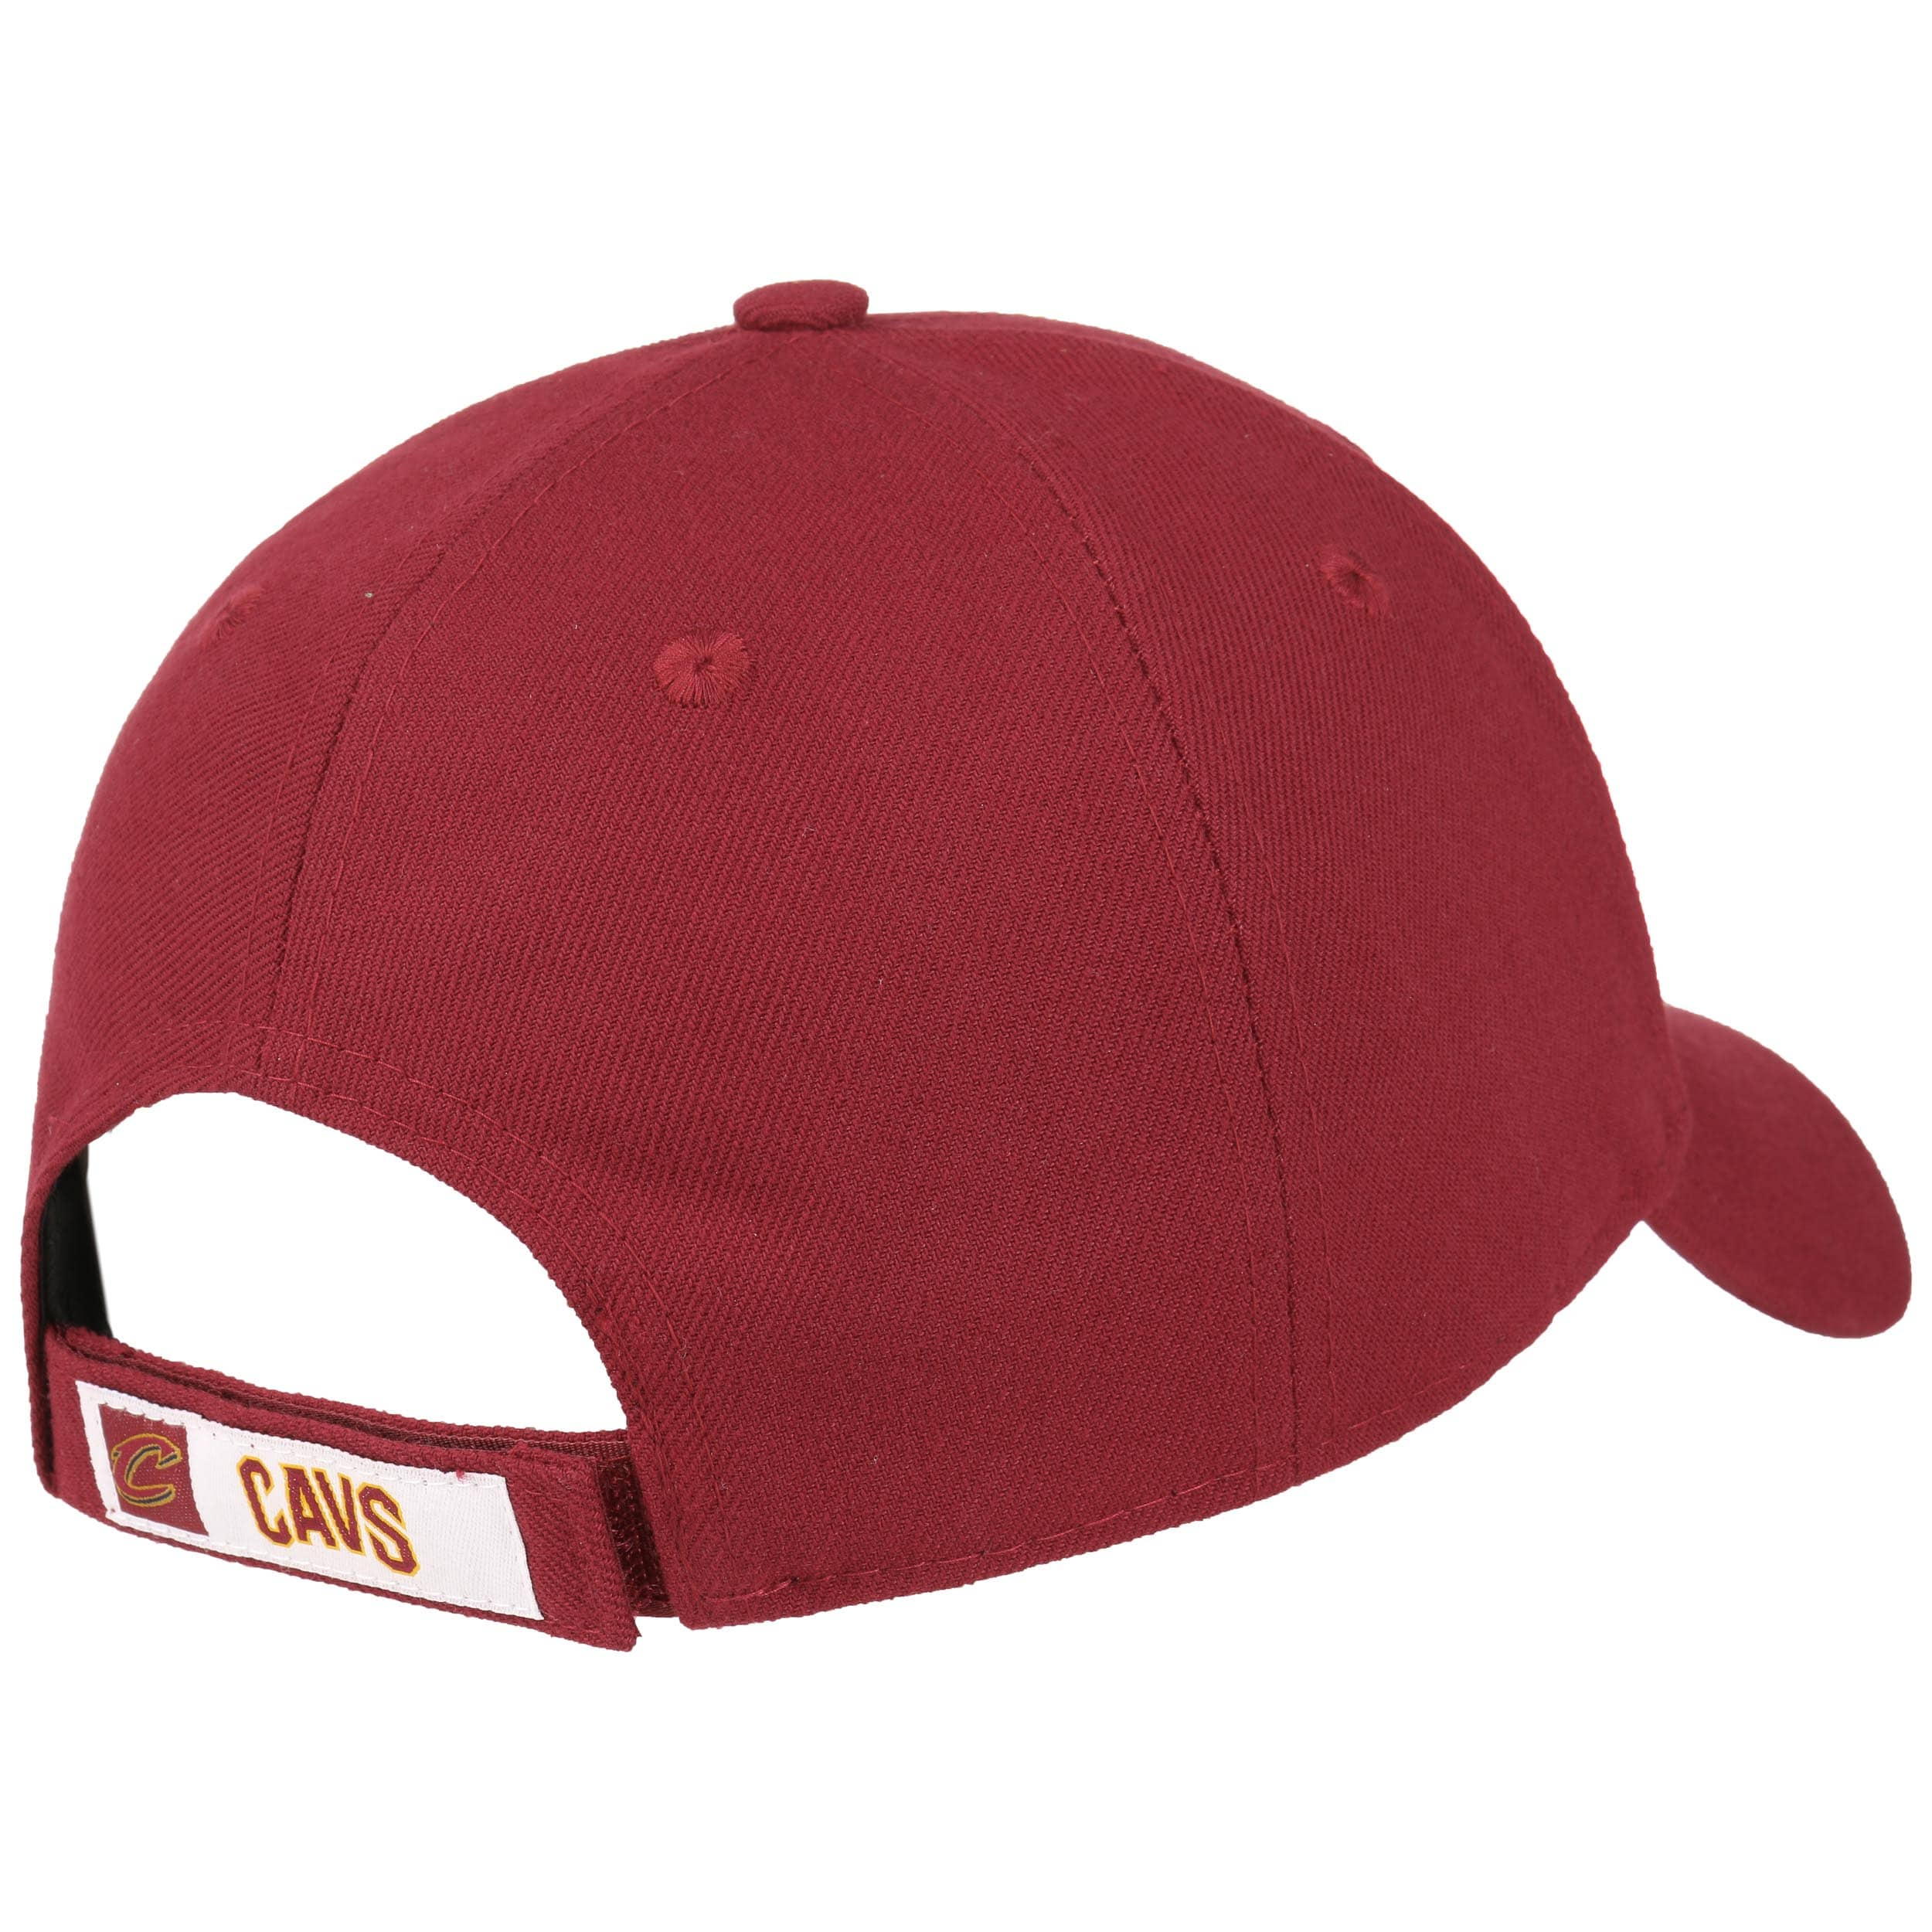 ... Cappellino 9Forty League Cavs by New Era - rosso bordeaux 3 ... bf657a5692e2